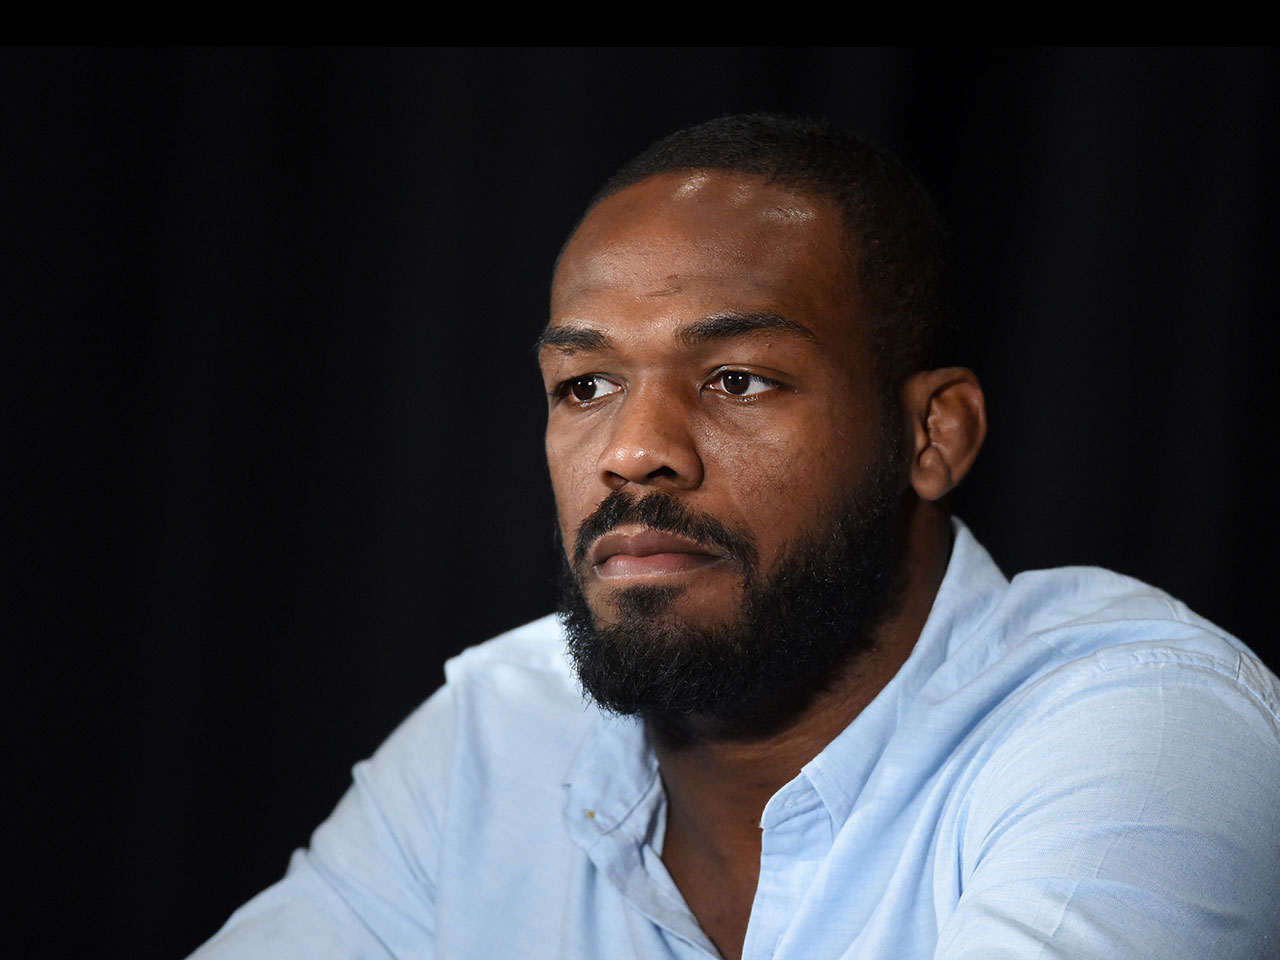 Jon Jones Failed a Drug Test Before UFC 214